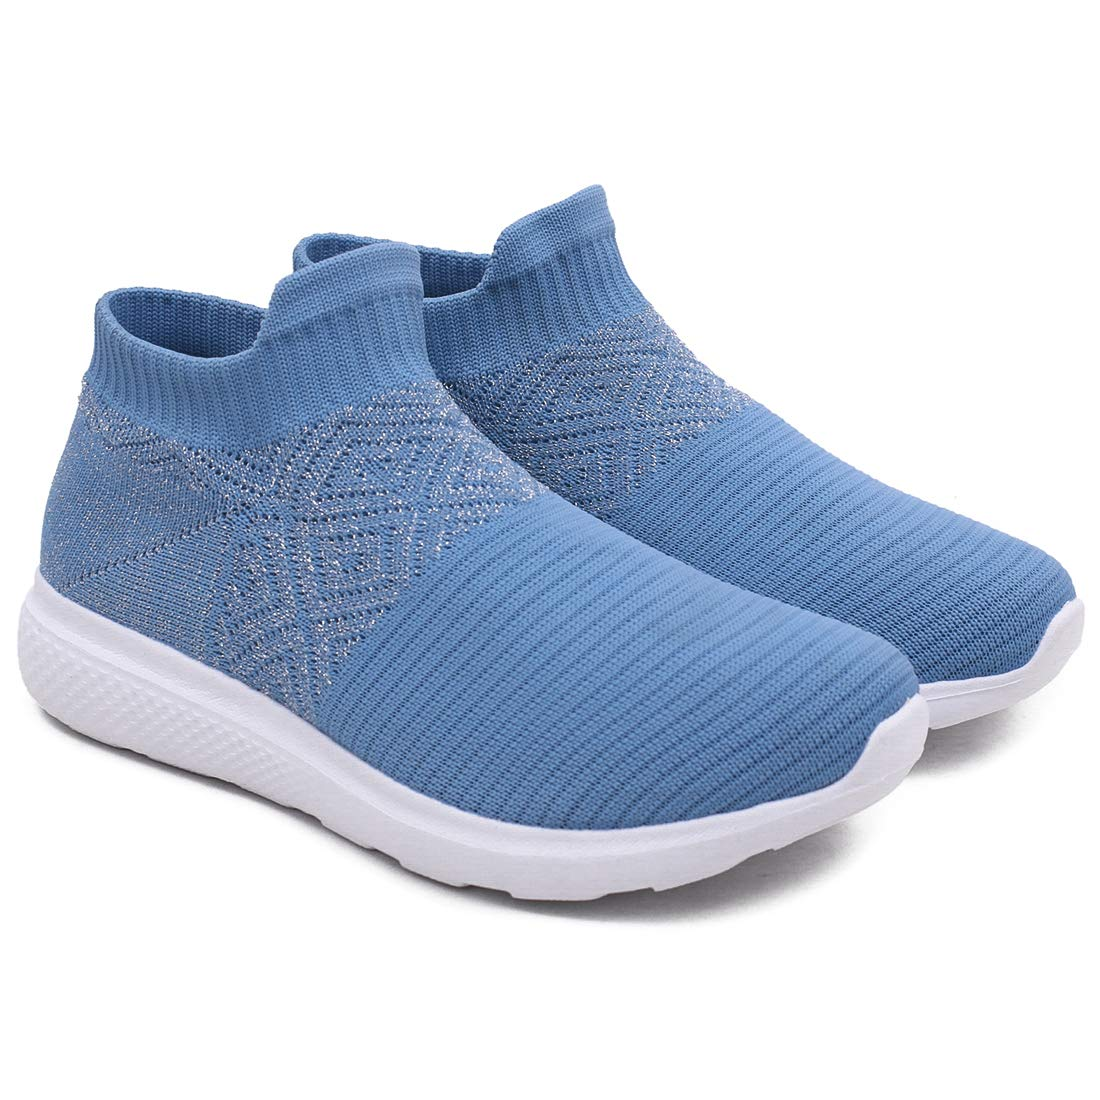 ASIAN Women's Fancy-01 Sky Blue Walking Shoes, Shoes,Sports Shoes, Fabric Sports Shoes (UK-5) (B07VL52NDZ) Amazon Price History, Amazon Price Tracker